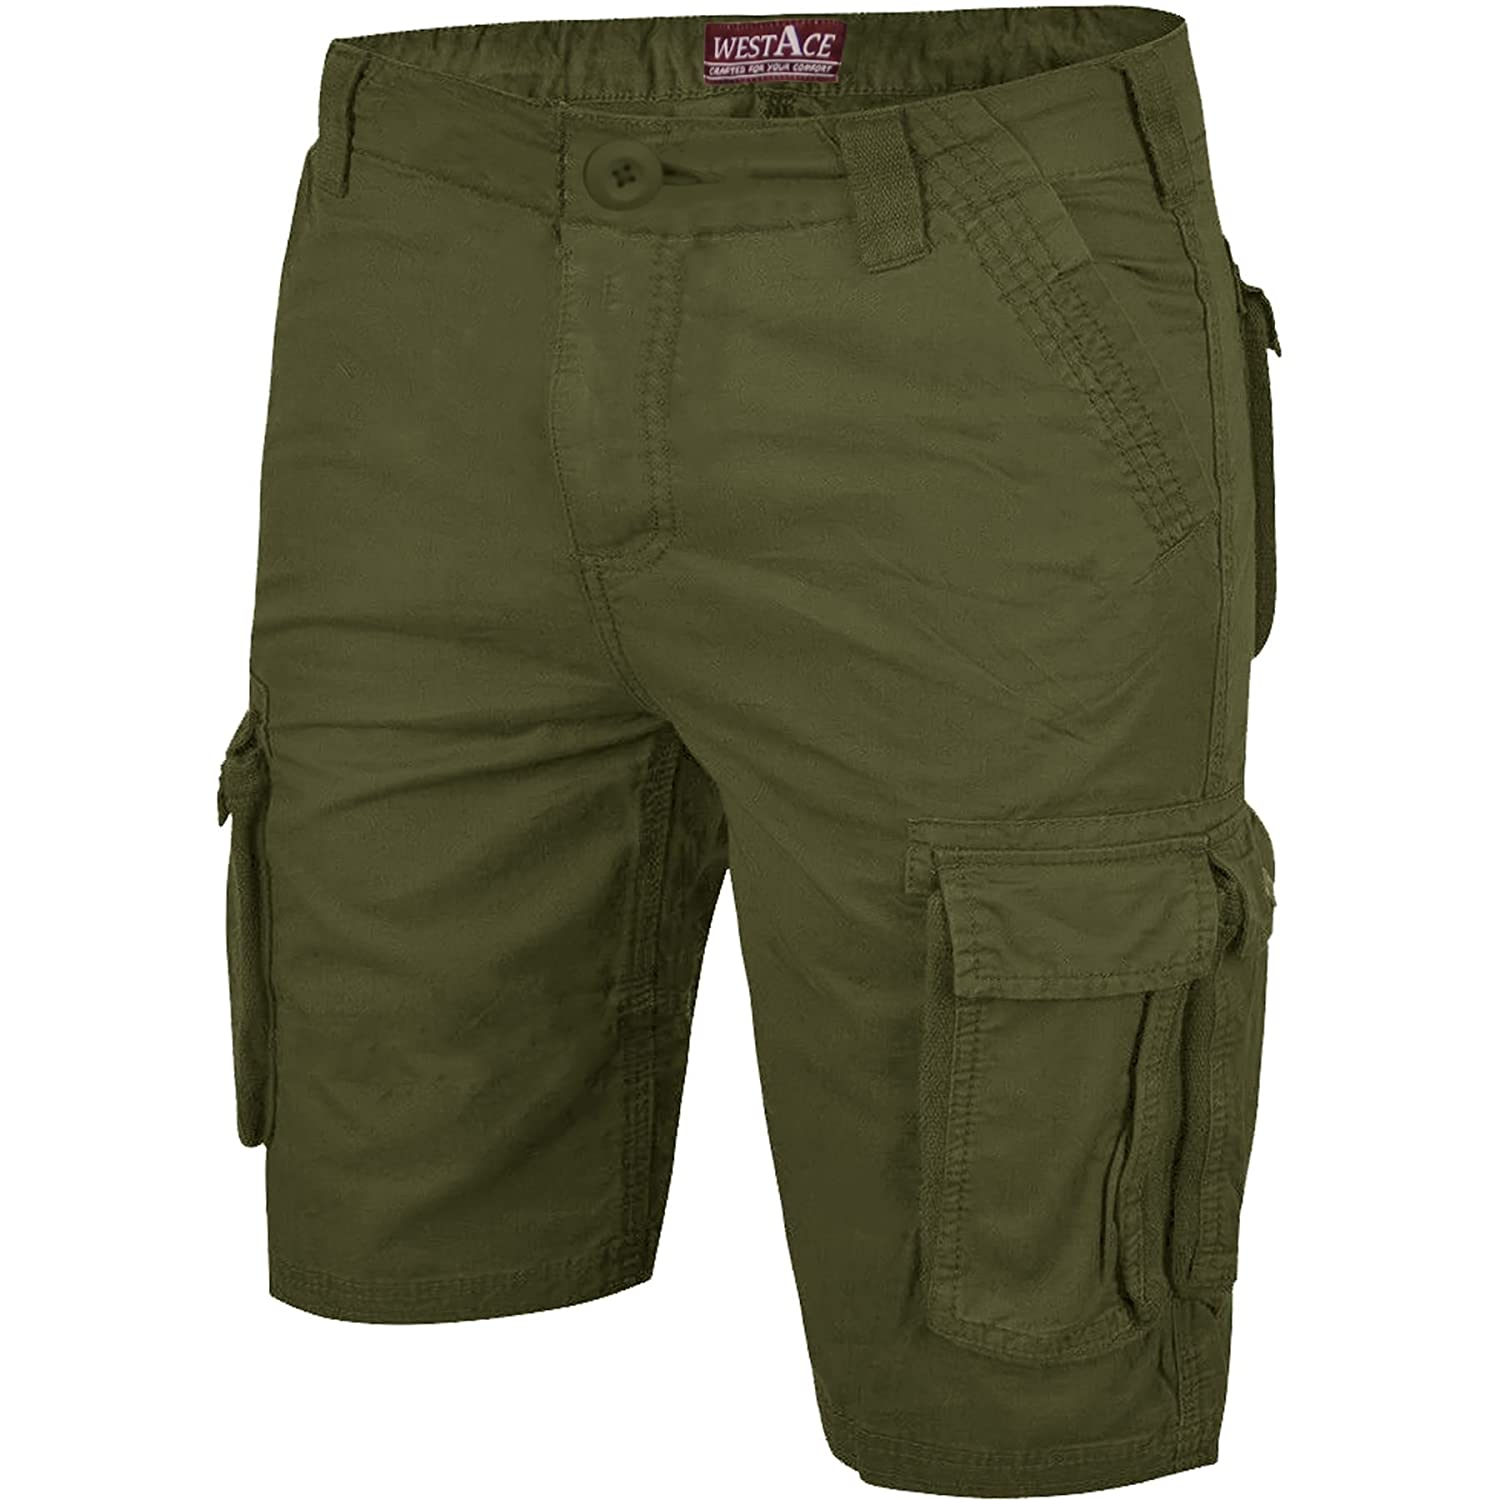 WestAce Mens Camo Shorts Cargo Combat Army Half Pant Work Wear Camouflage 100/% Cotton Chino Shorts